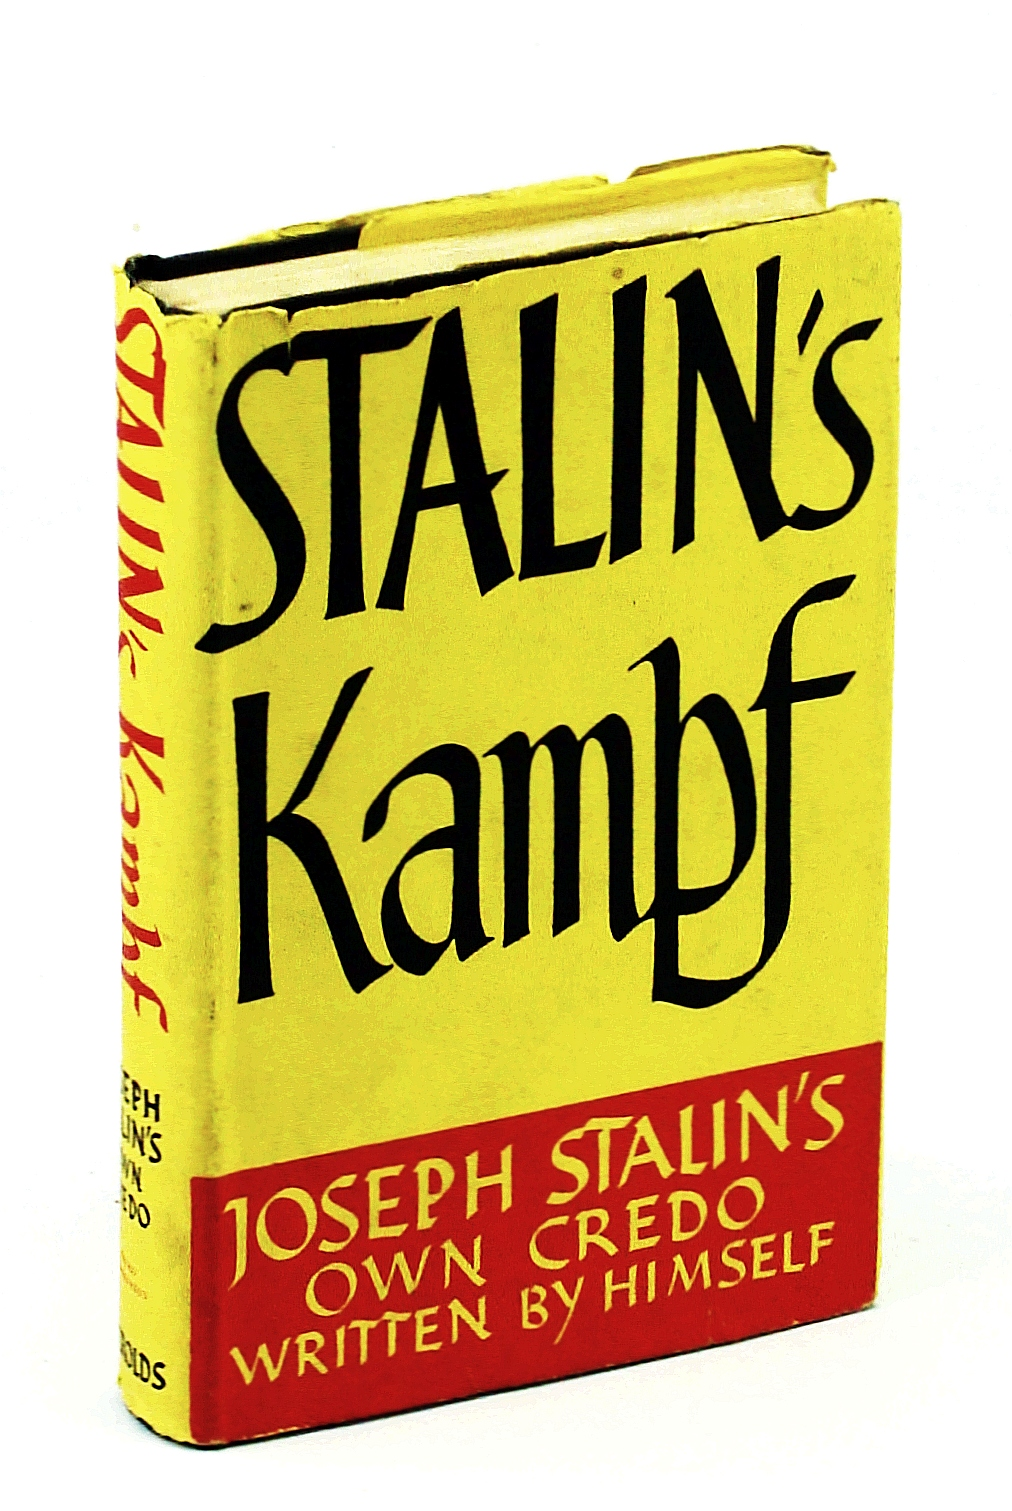 Image for Stalins Kampf Joseph Stalins Own Credo